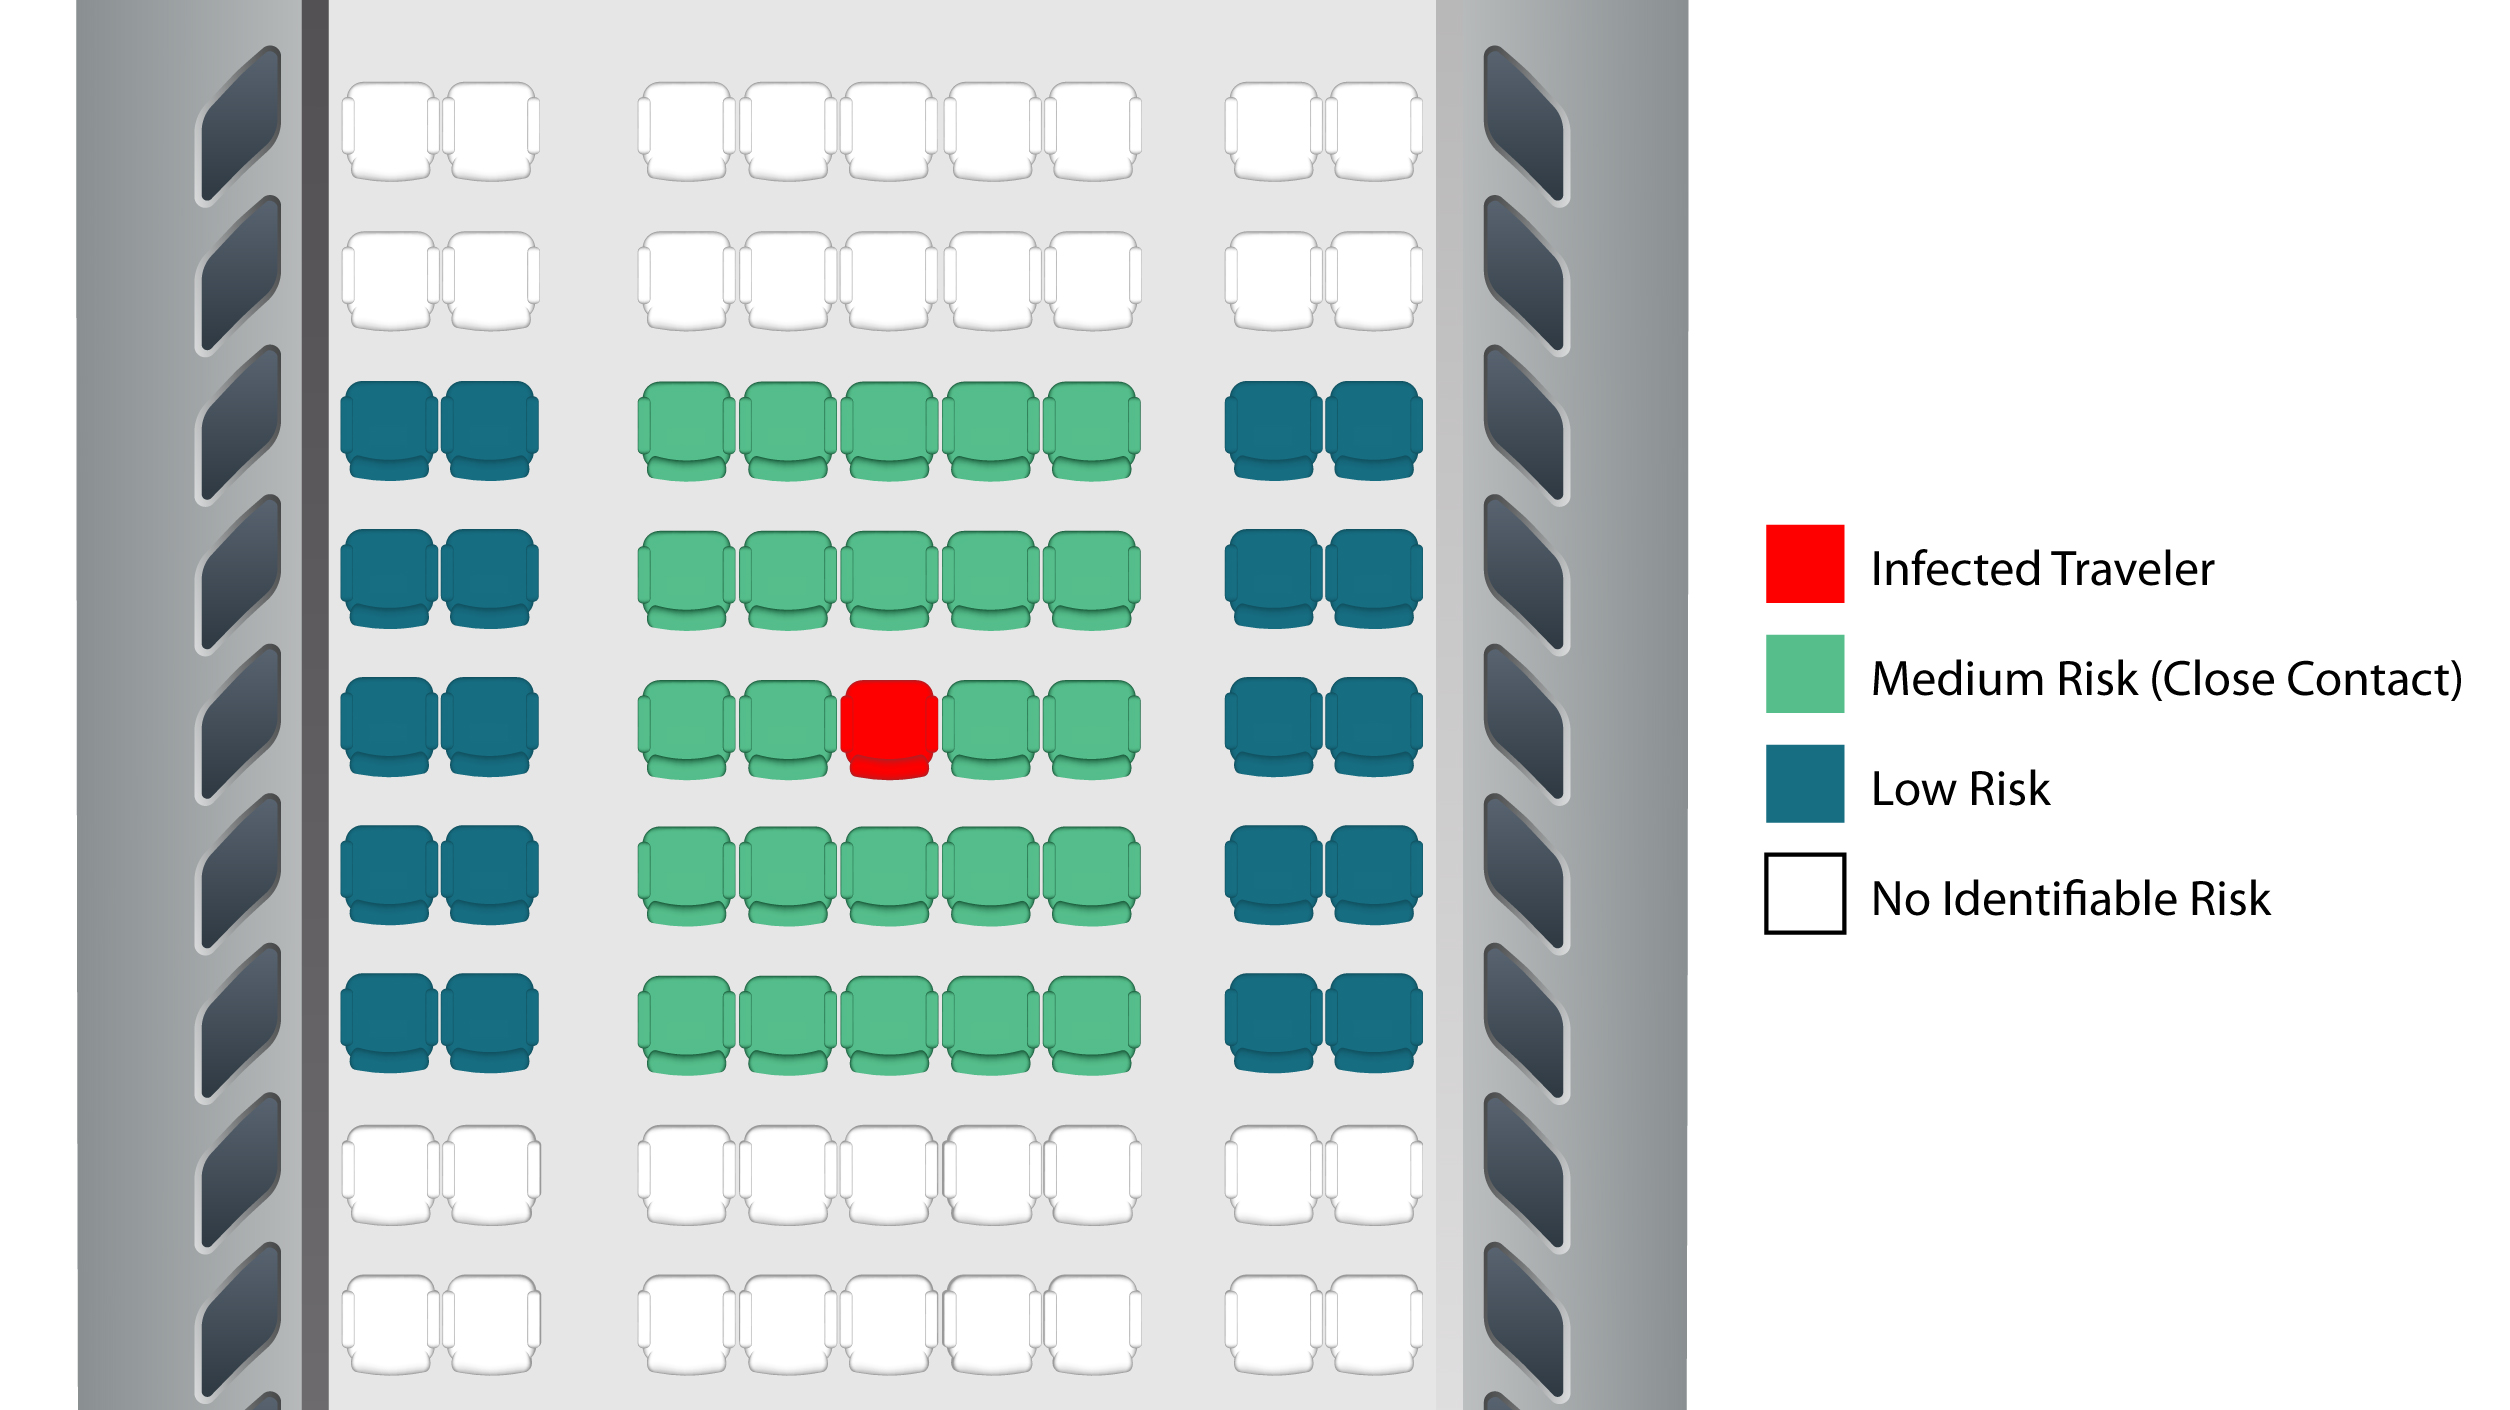 Sample seating chart for a 2019-nCoV aircraft contact investigation showing risk levels based on distance from the infected traveler.